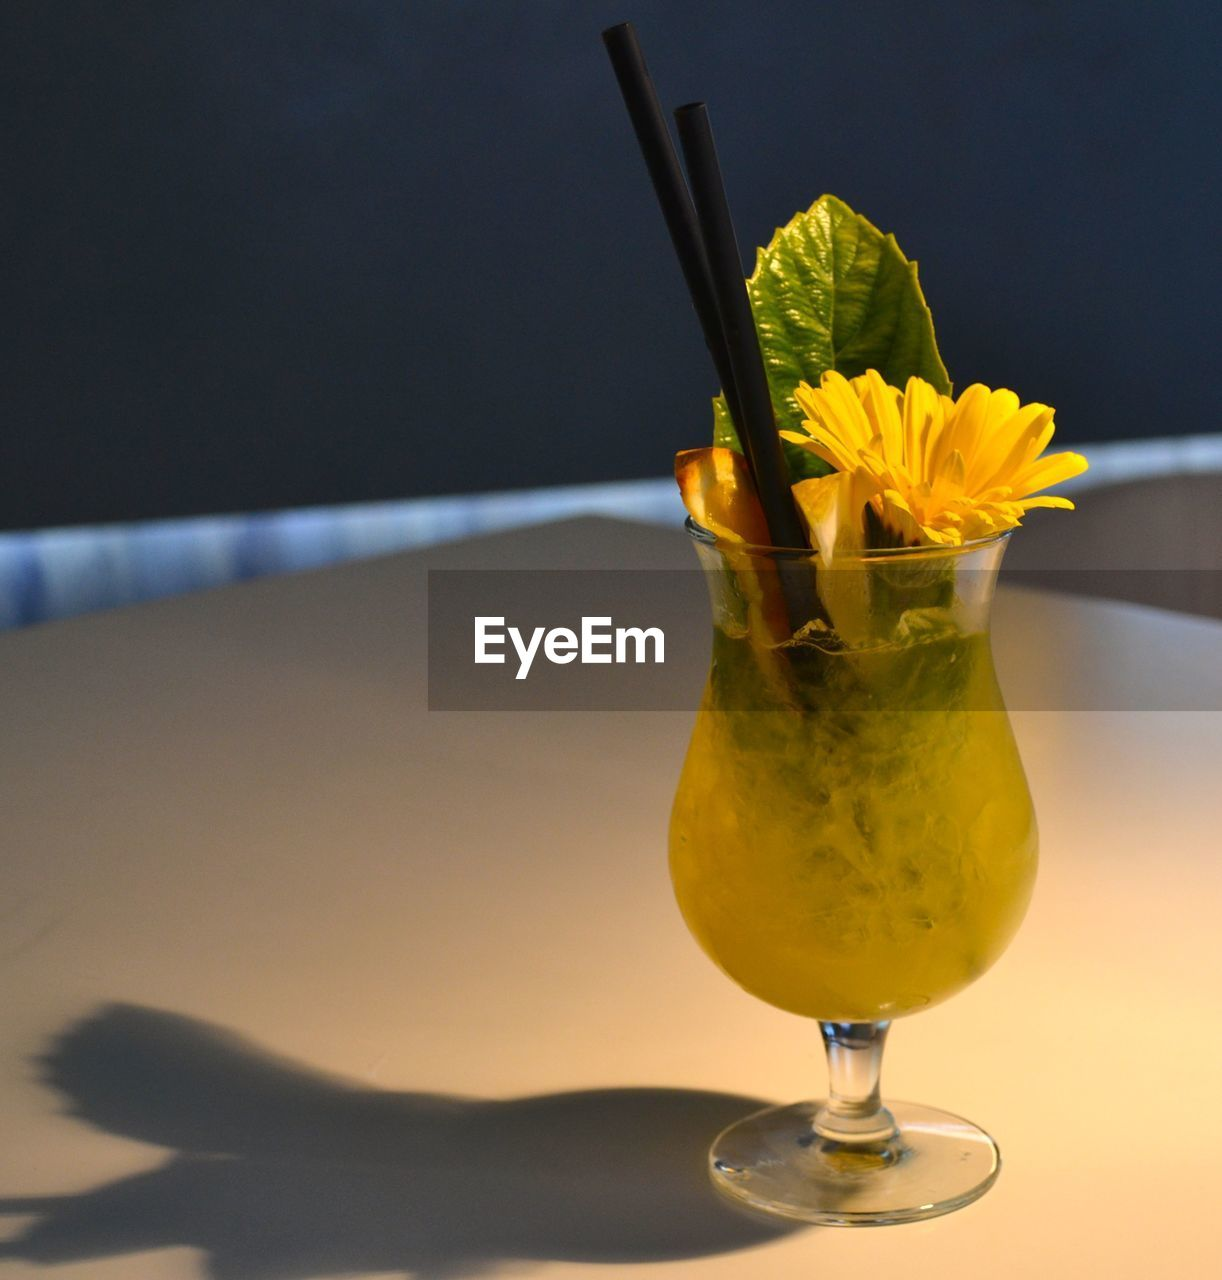 freshness, glass, table, alcohol, drink, close-up, household equipment, refreshment, drinking glass, still life, food and drink, yellow, cocktail, no people, indoors, focus on foreground, glass - material, food, flower, fruit, flower head, garnish